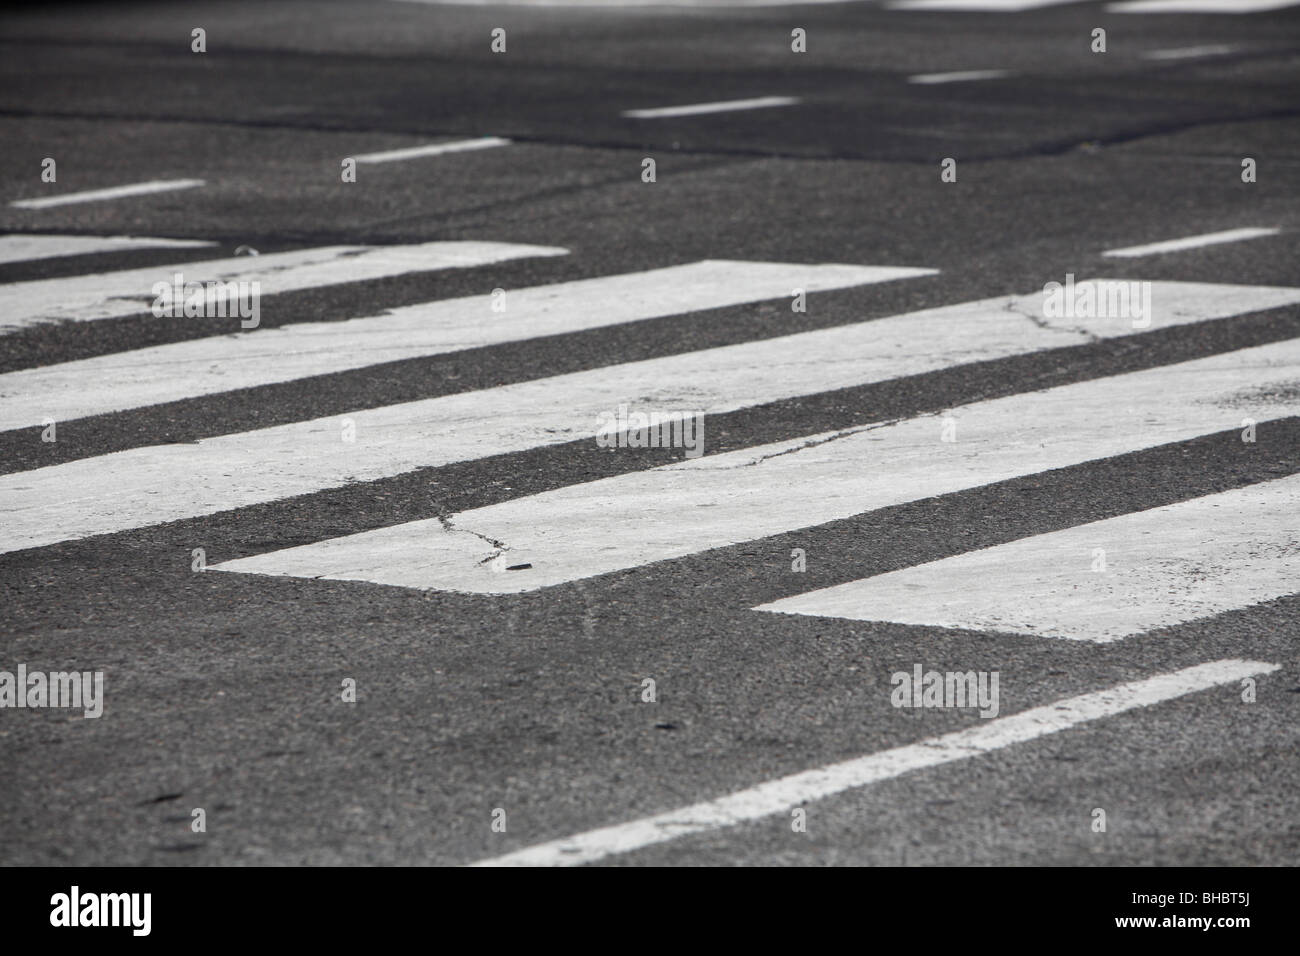 crosswalk in New York City - Stock Image